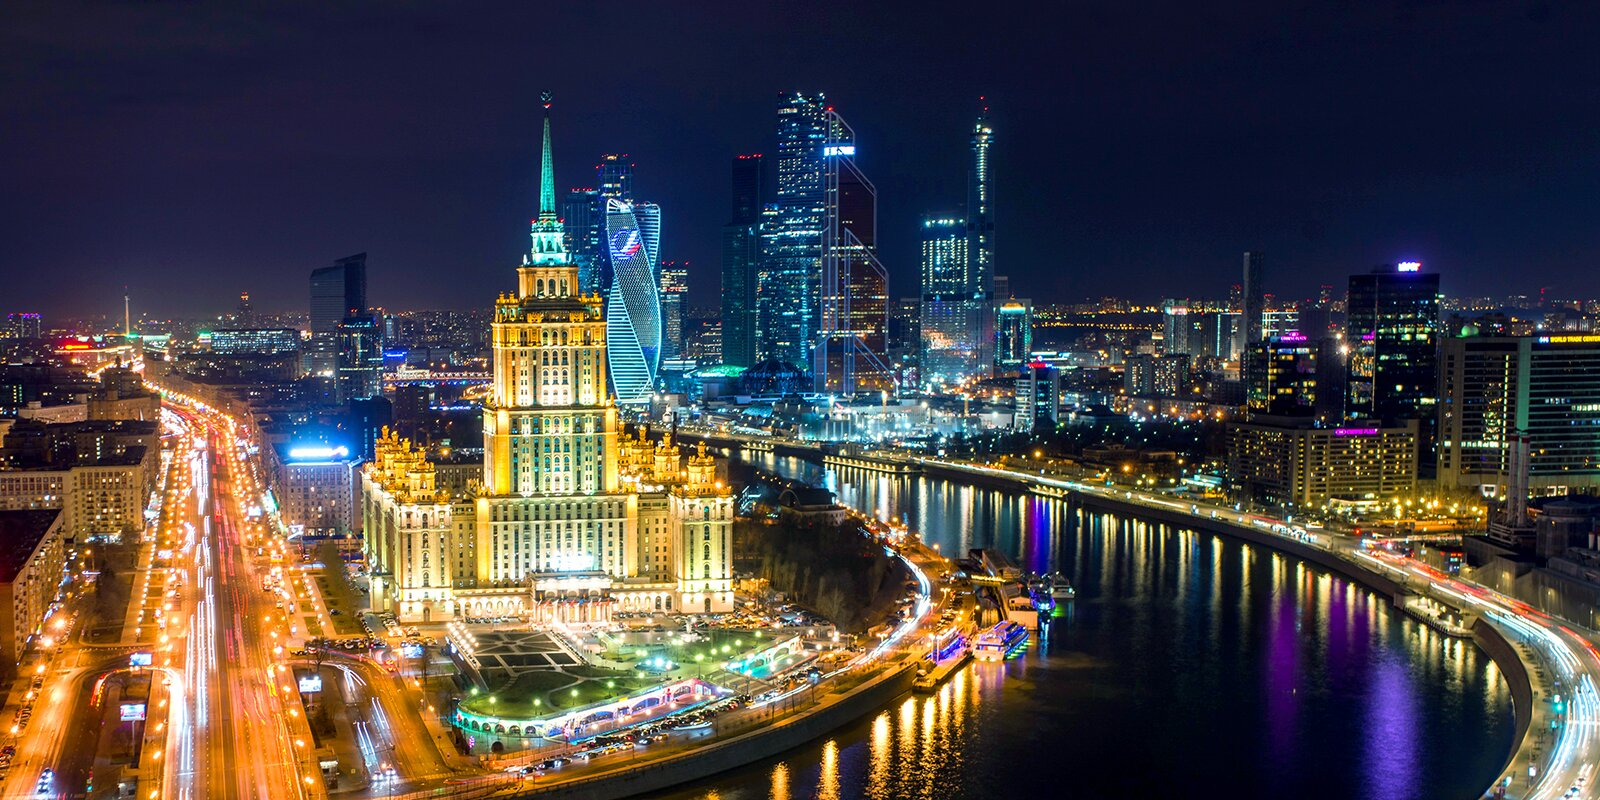 A thousand of new hotspots in Moscow's Wi-Fi network